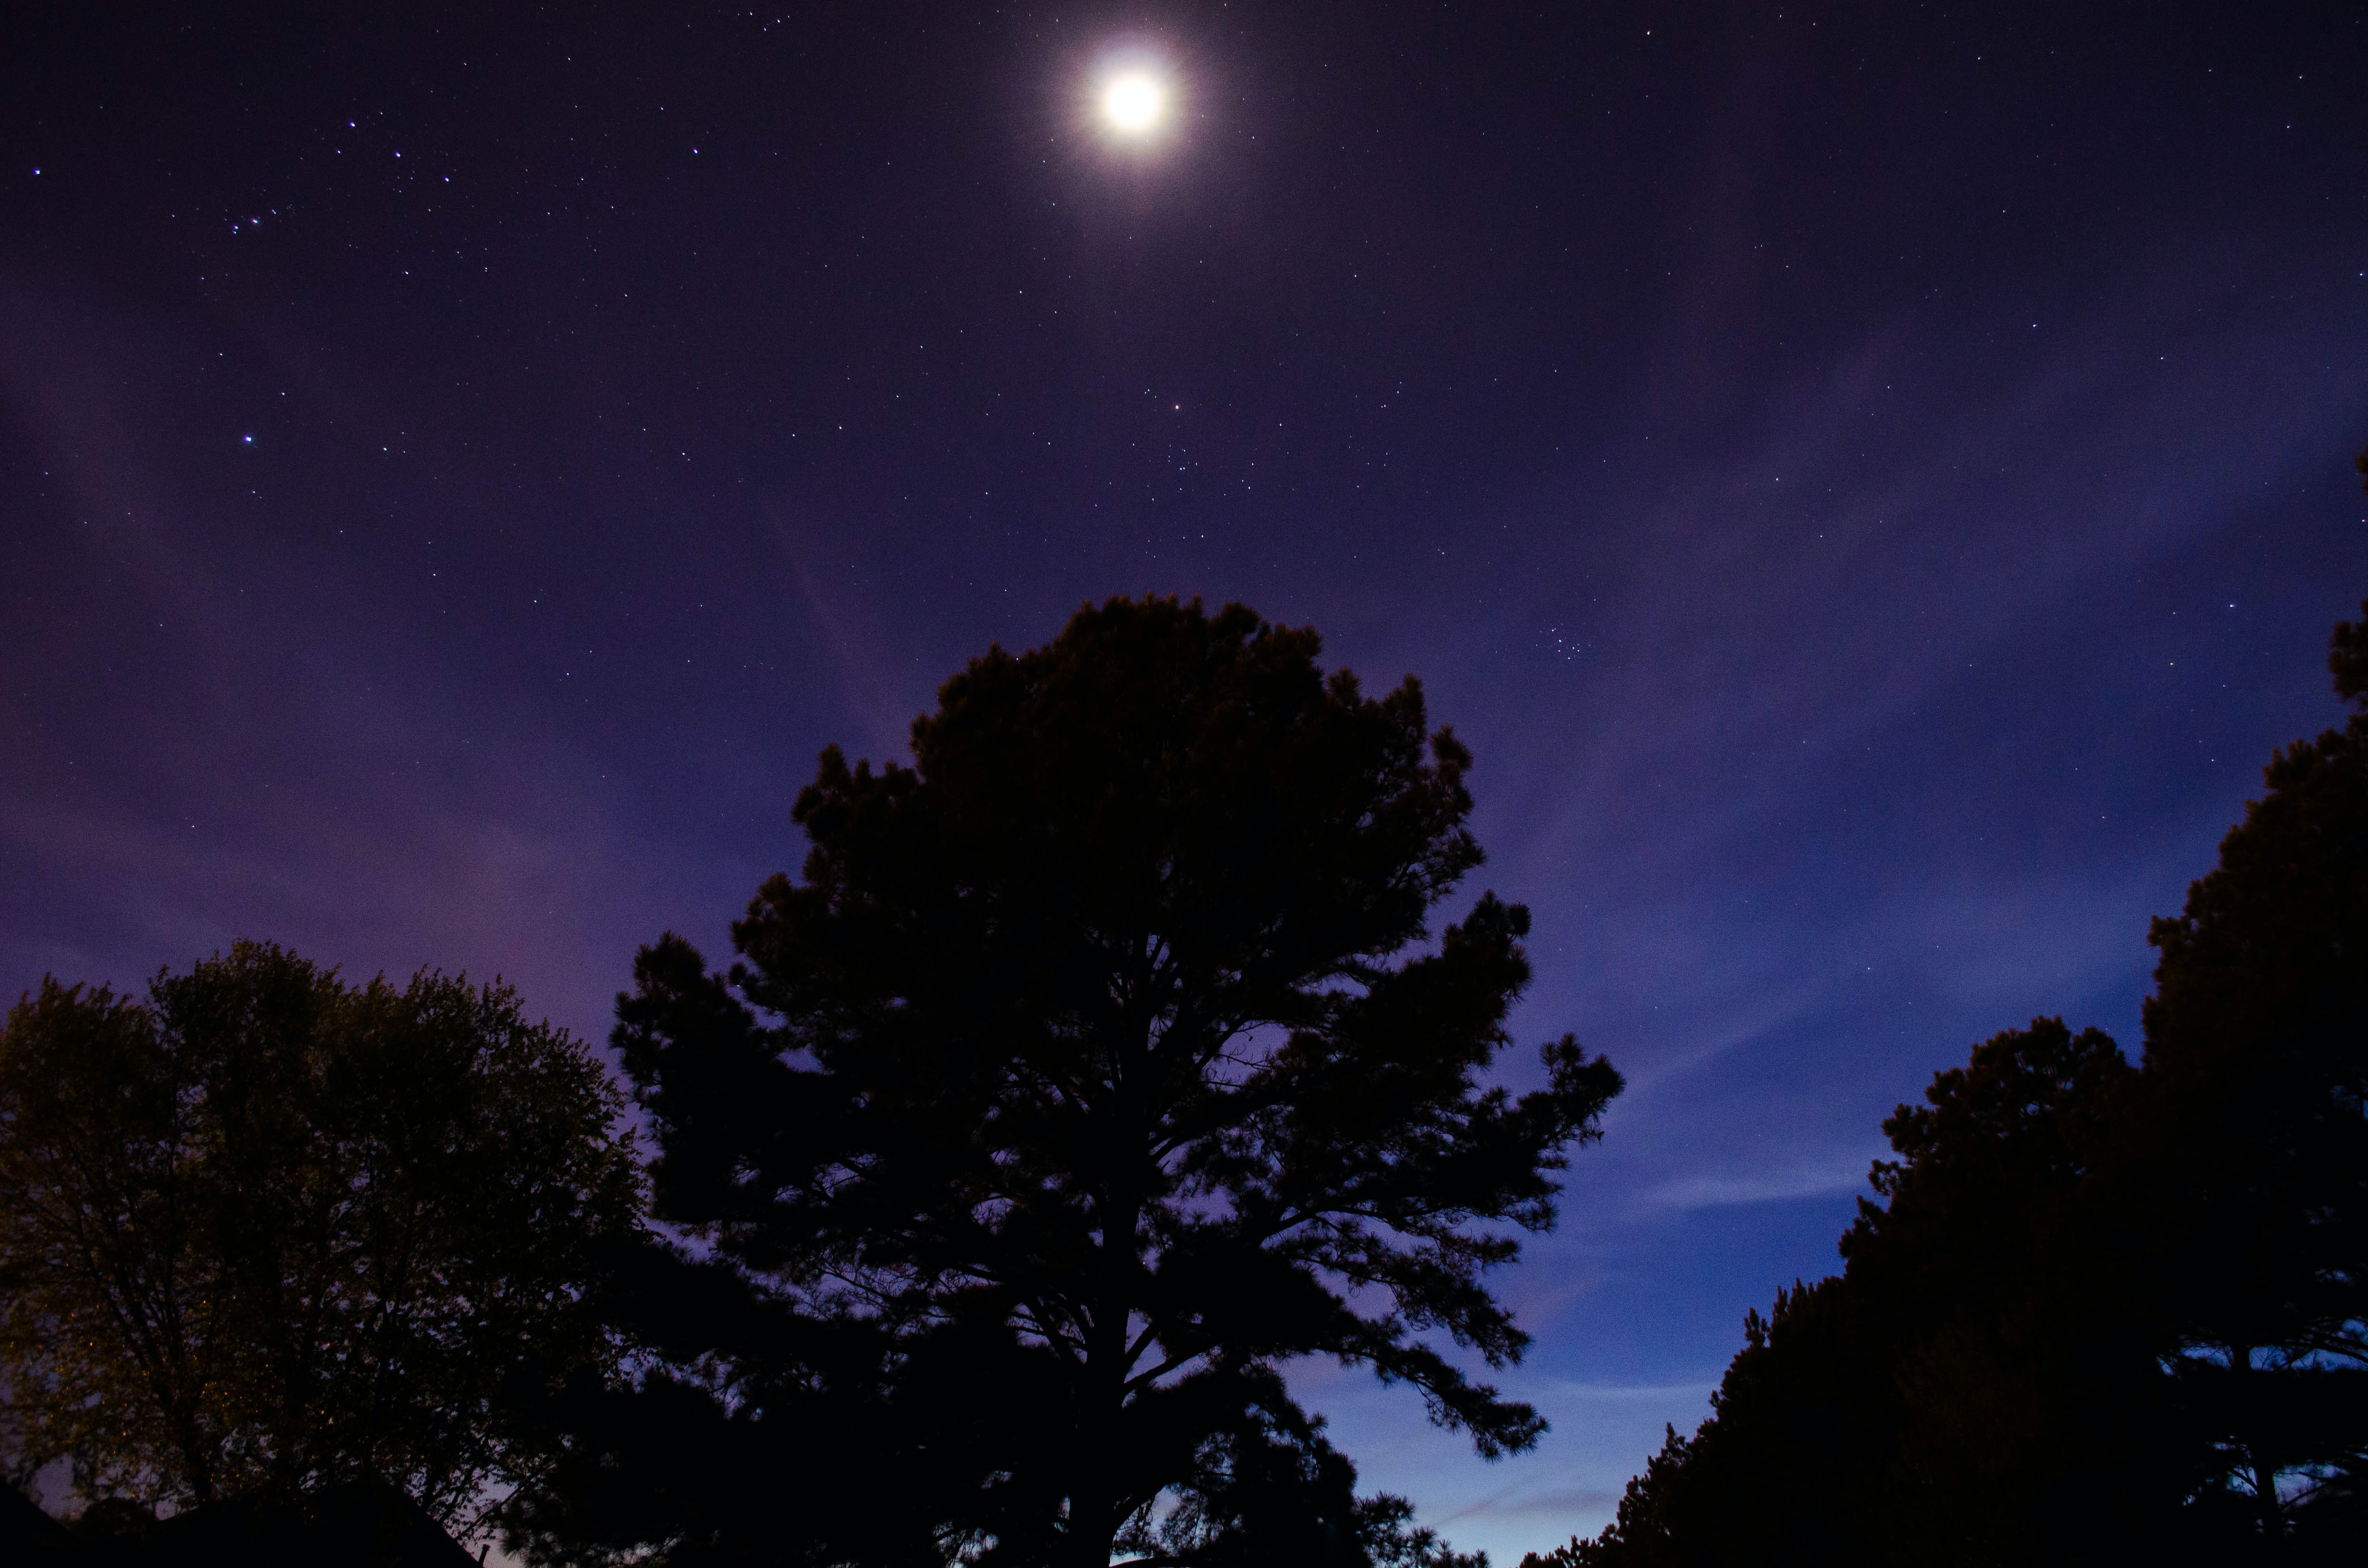 The moon glows at dawn over trees silhouetted against an inky blue sky